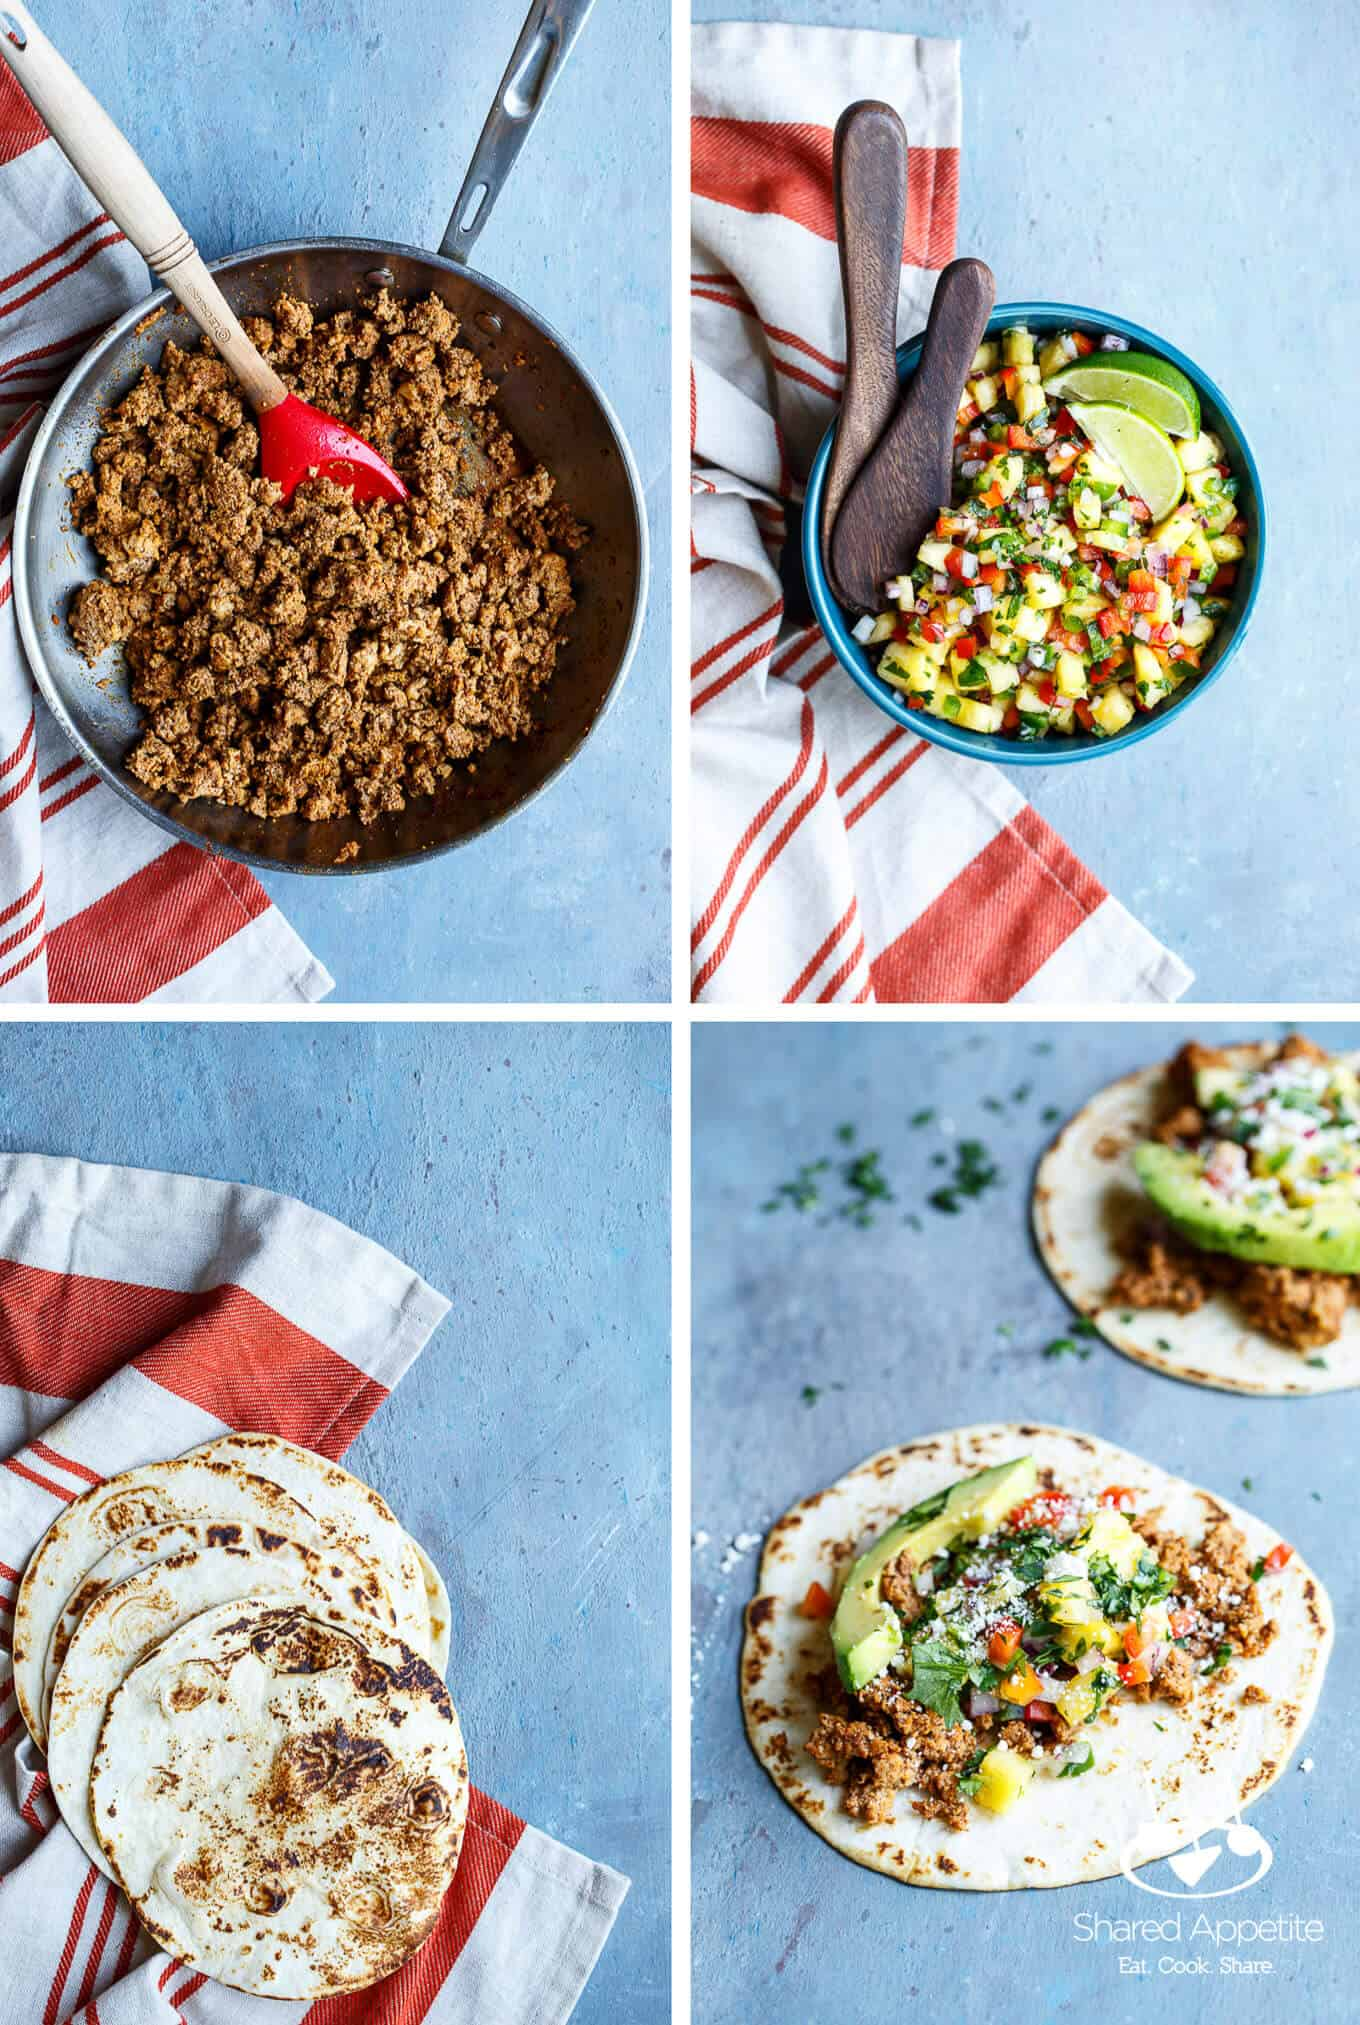 Turkey for Tacos, Pineapple Salsa, Tortillas, and Healthy Turkey Tacos with Pineapple Salsa | sharedappetite.comf